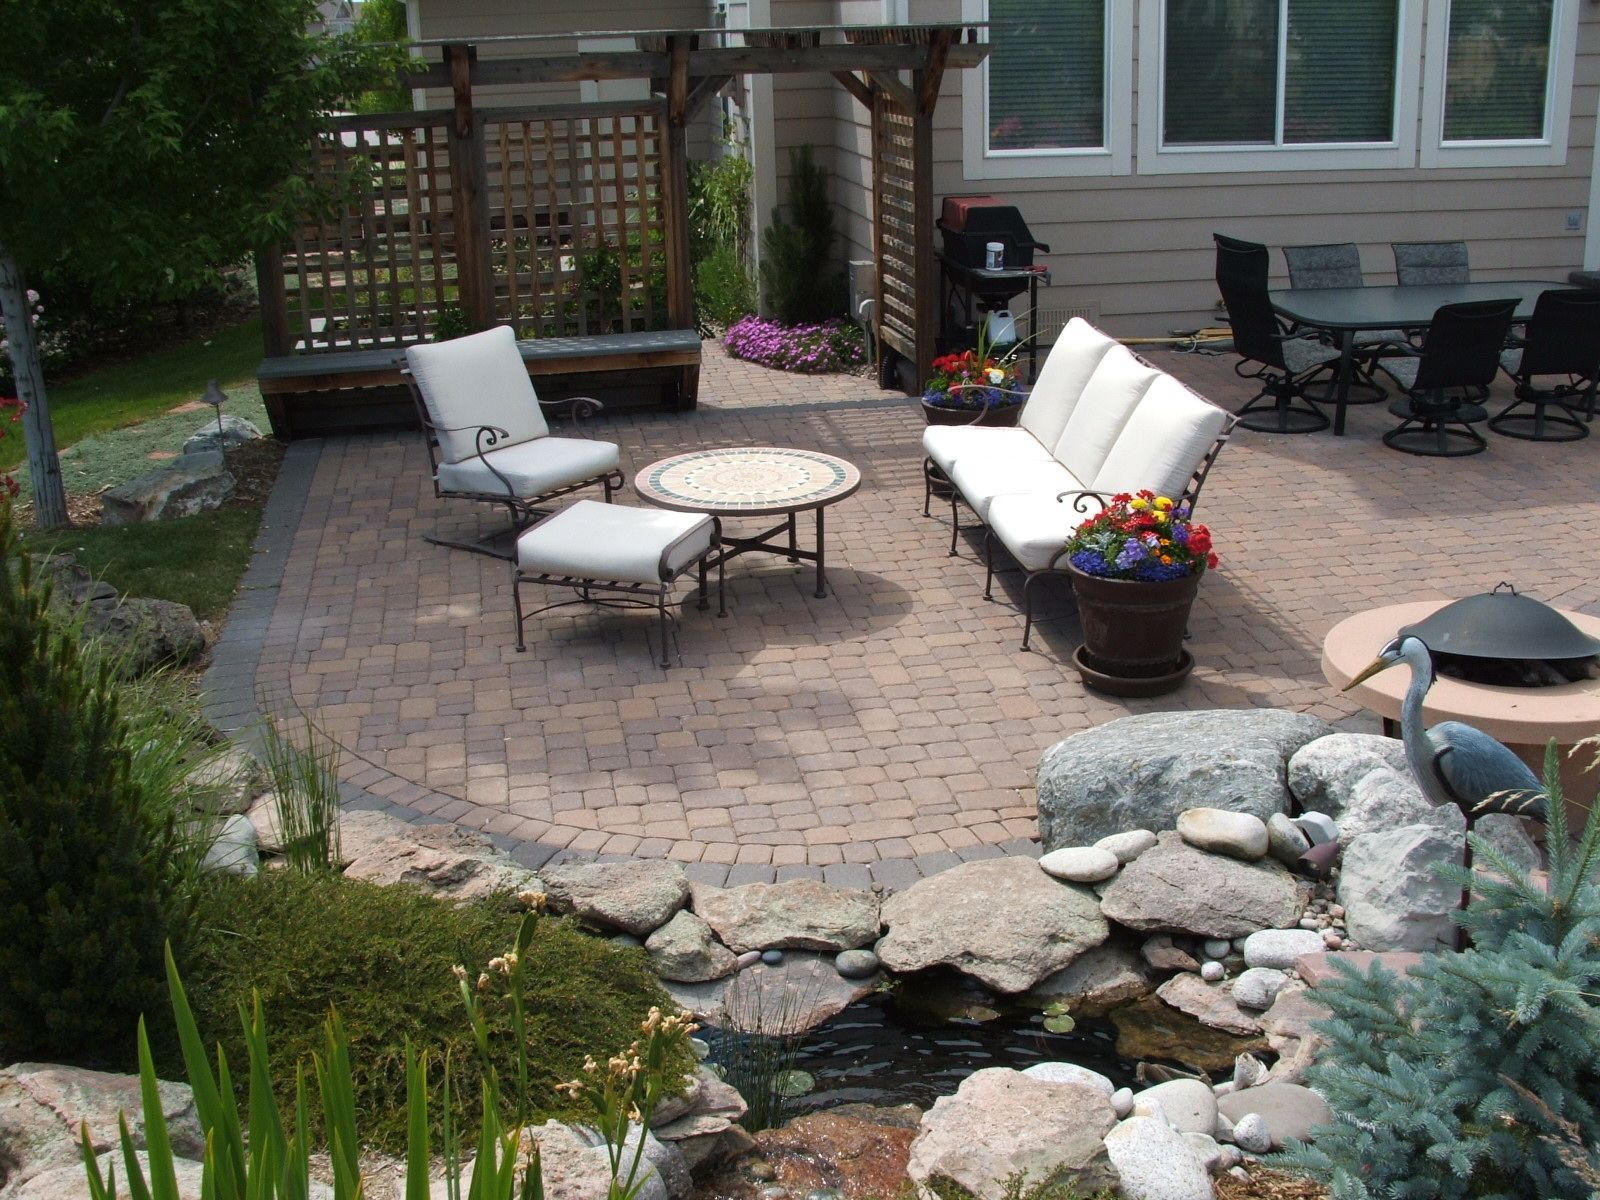 Amazing Small Patio On A Budget Design Ideas 2019 Gorgeous Amazing Small Patio O Large Backyard Landscaping Small Backyard Gardens Small Backyard Landscaping